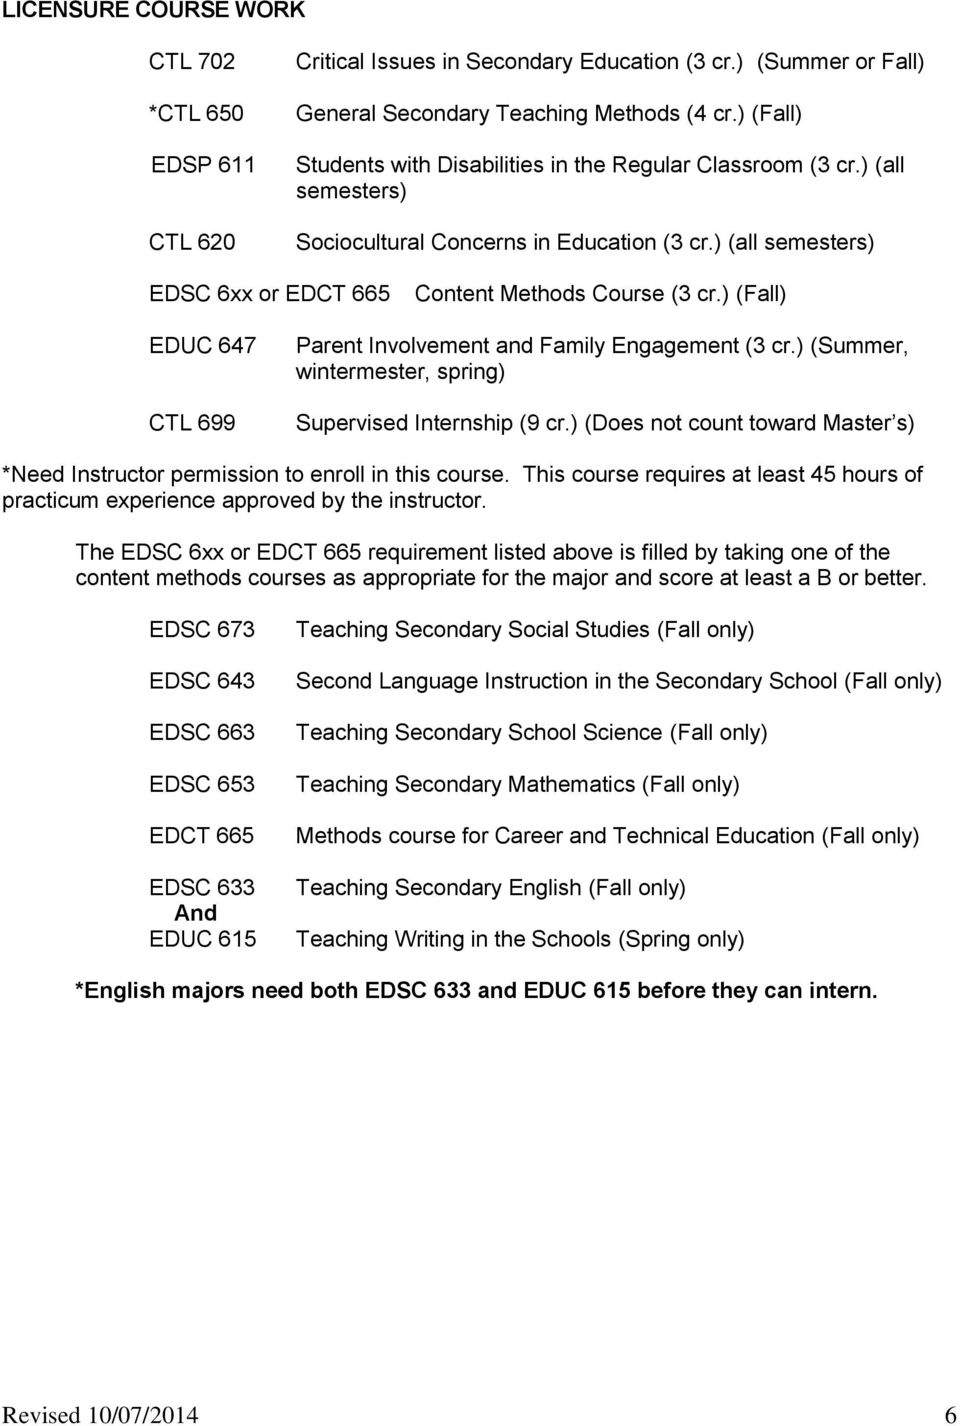 ) (Fall) EDUC 647 CTL 699 Parent Involvement and Family Engagement (3 cr.) (Summer, wintermester, spring) Supervised Internship (9 cr.